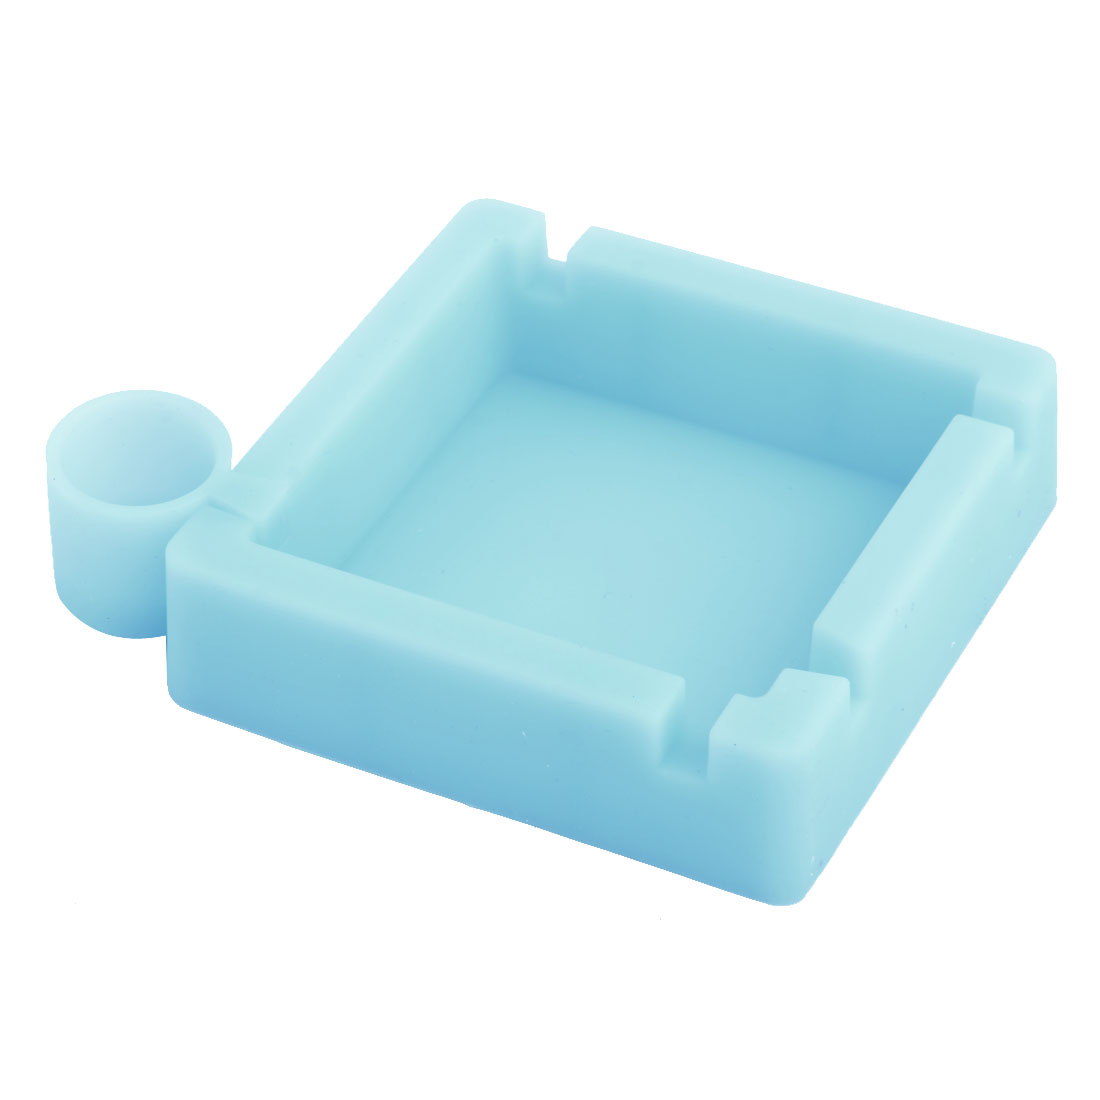 Home Office Car Silicone Heat Resistant Ashtray Cigarette Holder Container Blue